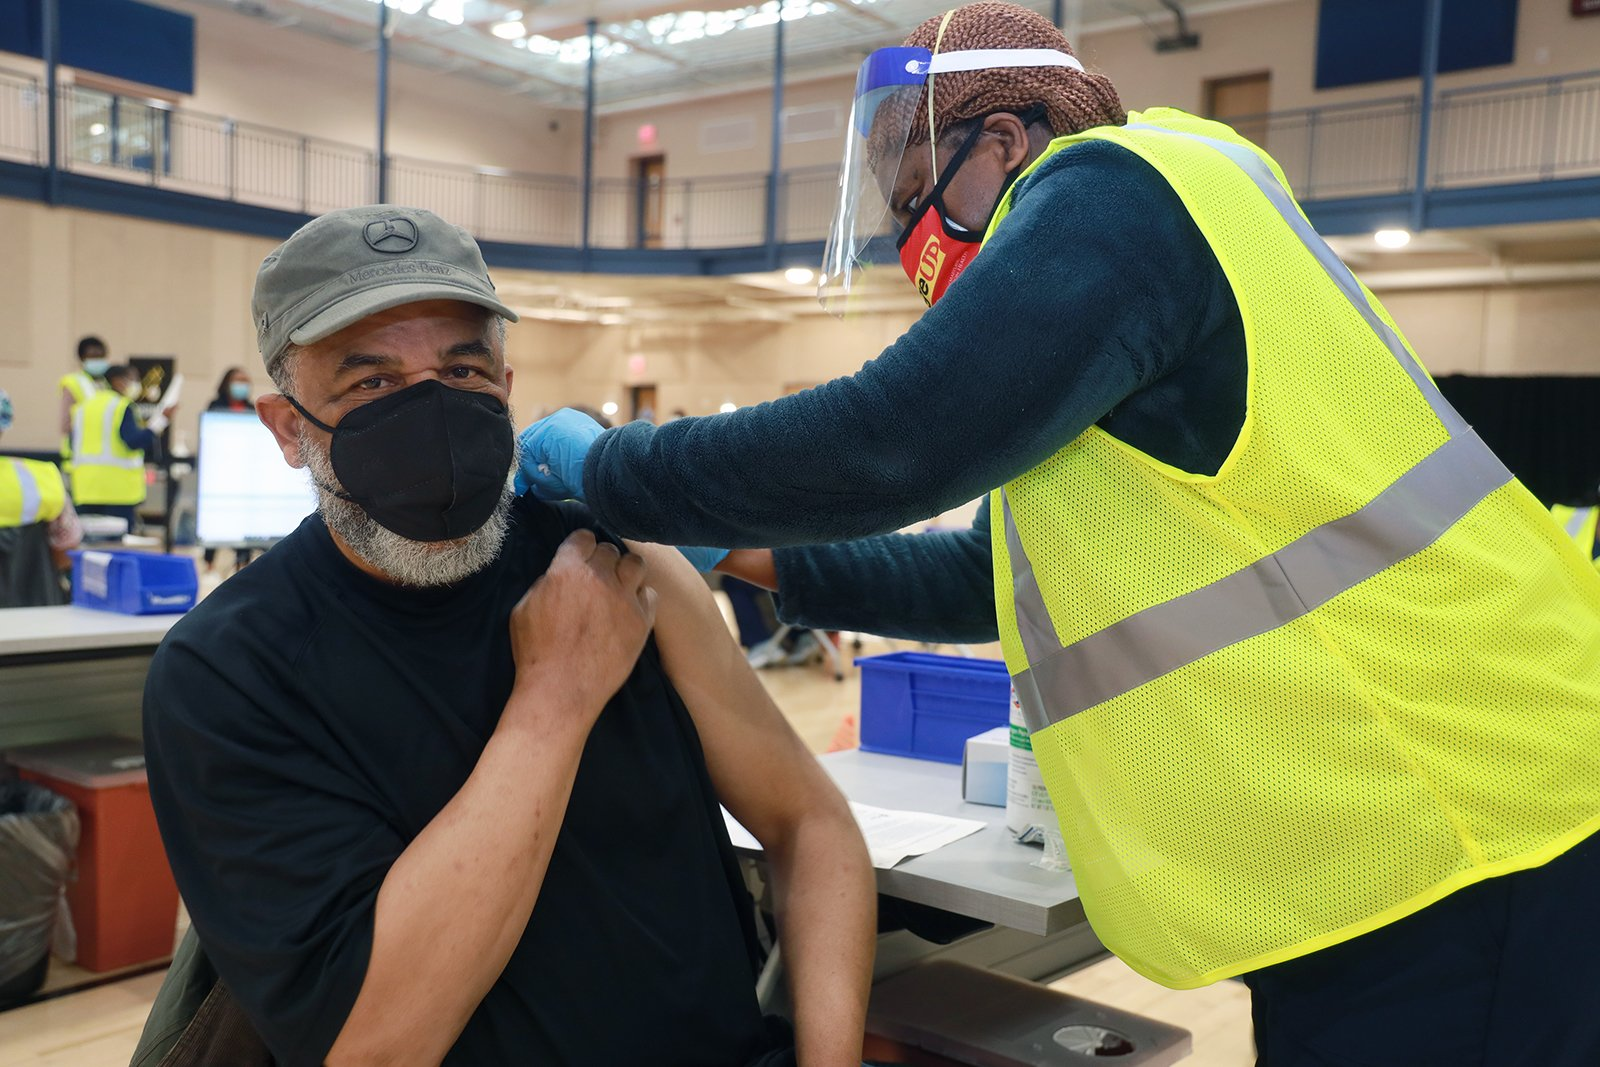 A man receives a COVID-19 vaccine at First Baptist Church of Glenarden in Upper Marlboro, Maryland, Tuesday, March 16, 2021. Photo courtesy First Baptist Church of Glenarden